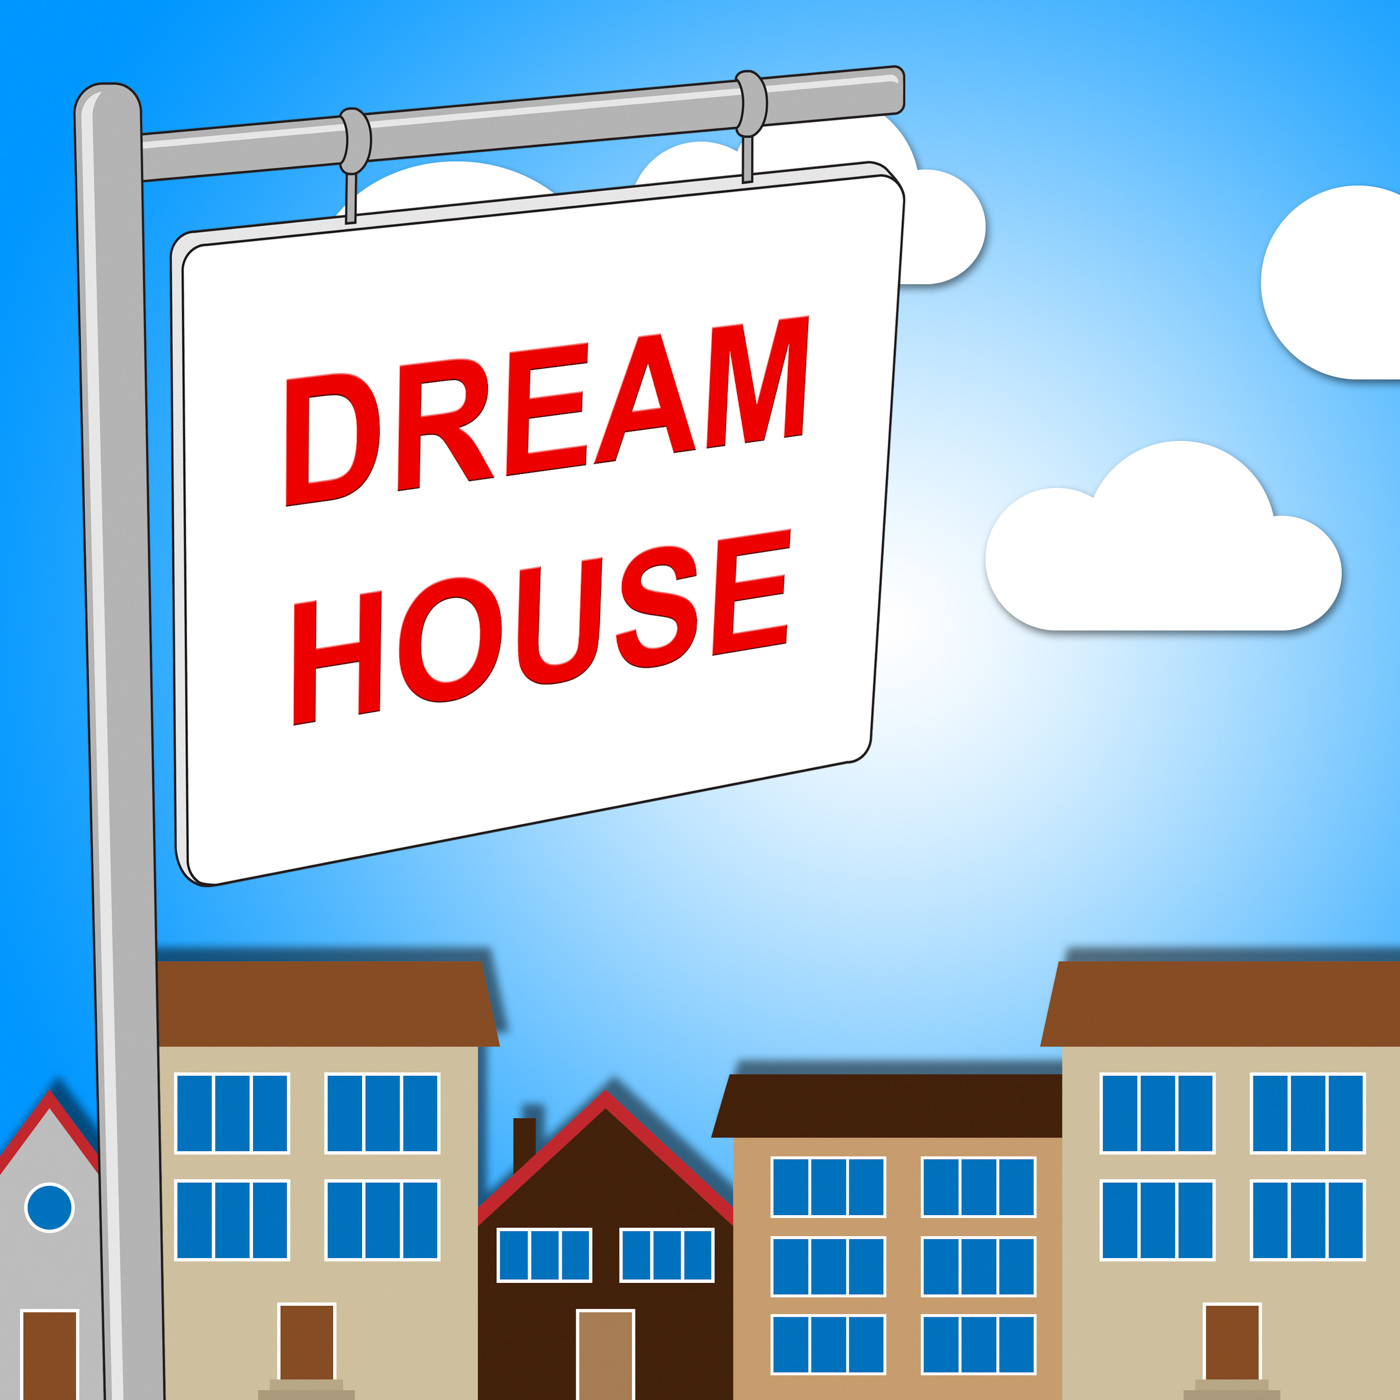 Dream House Indicates Displaying Desired And Ultimate, Signboard, Placard, Properties, Property, HQ Photo